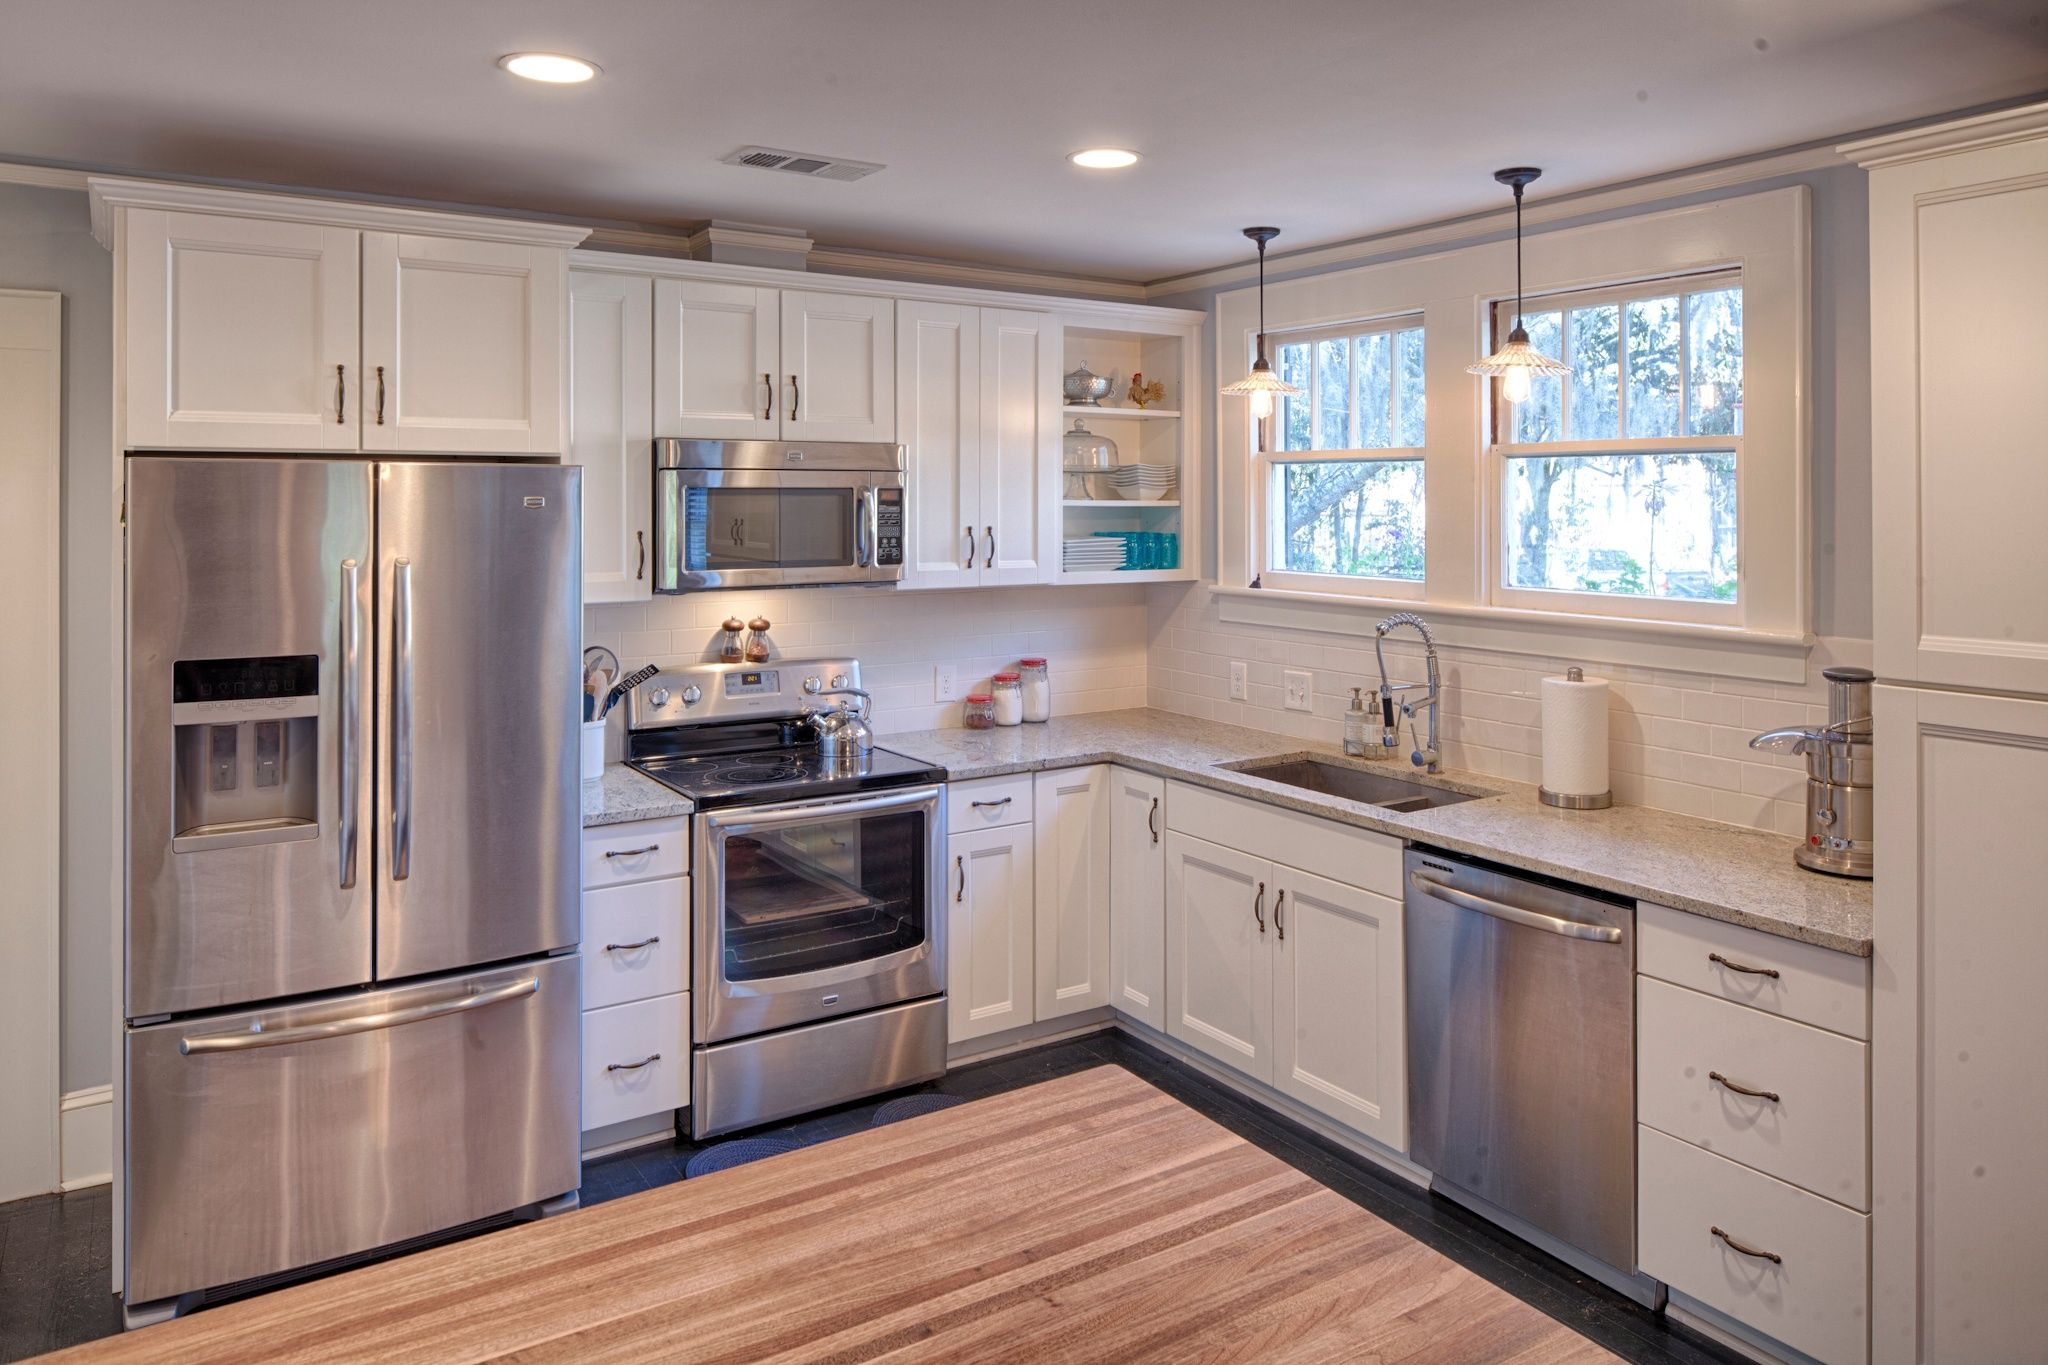 Budget kitchen remodel tips to reduce costs cocinas cocina budget kitchen remodel tips to reduce costs zillow digs solutioingenieria Choice Image